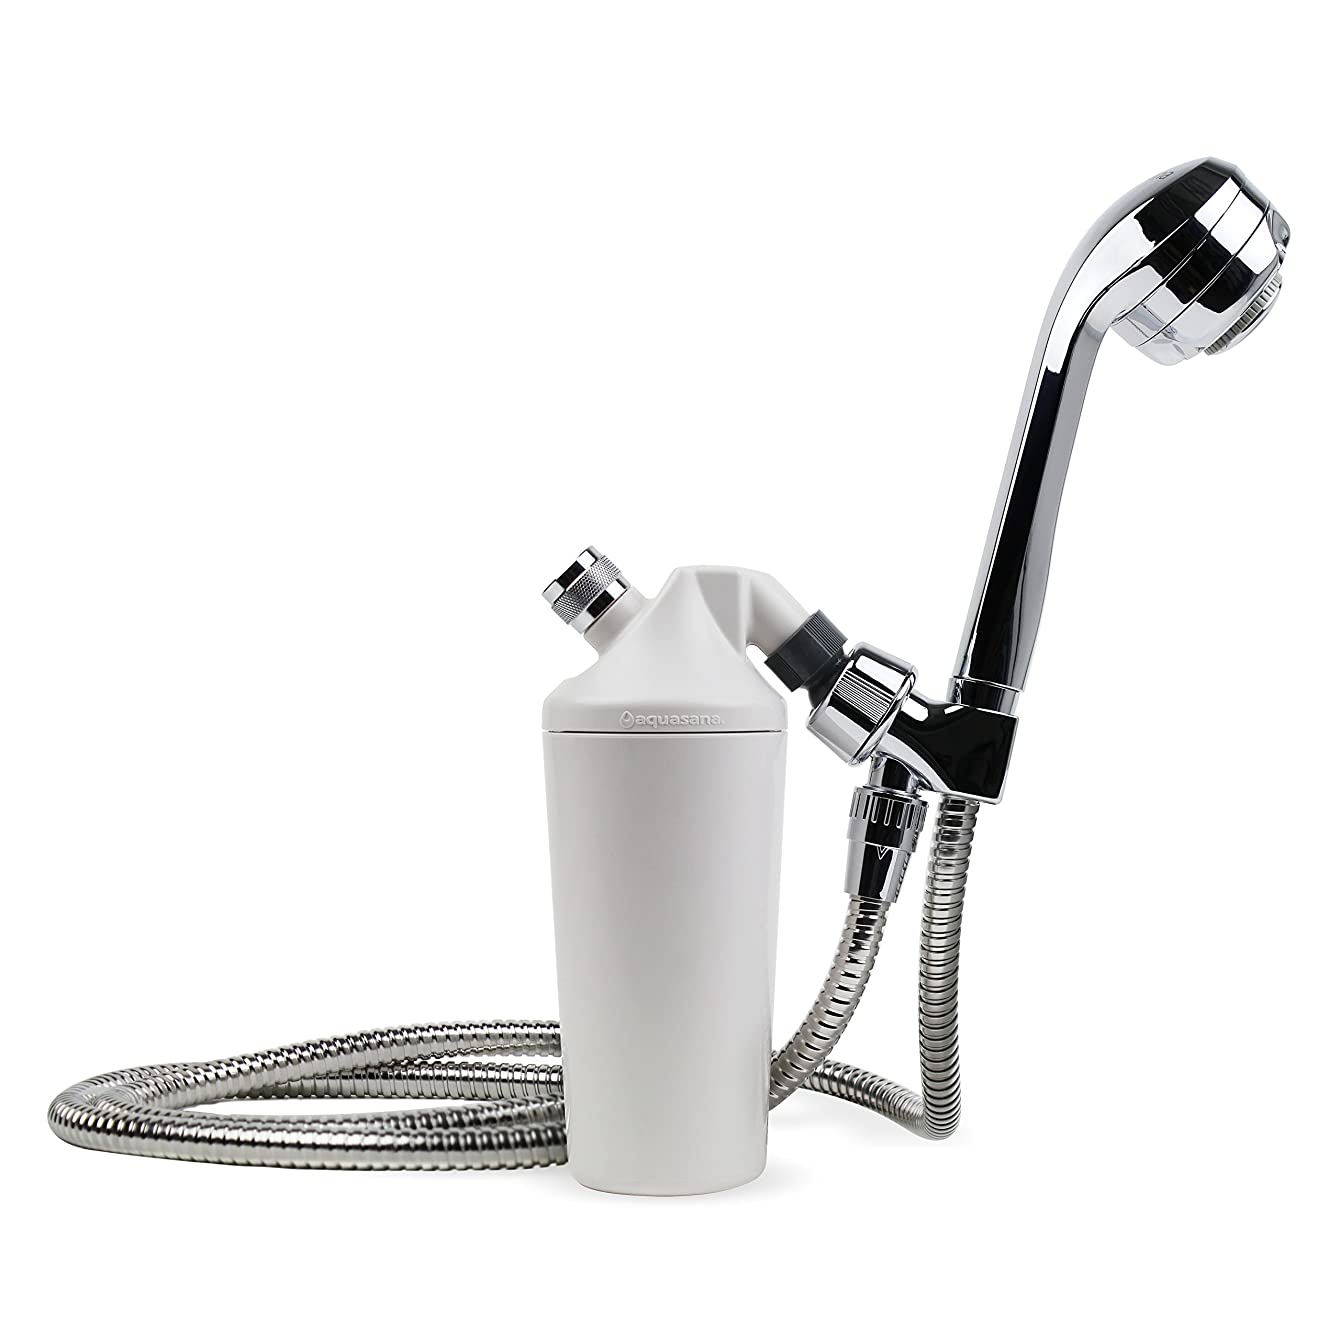 Aquasana Deluxe Shower Water Filter System with 5' Wand Premium Massaging Shower Head, Chrome